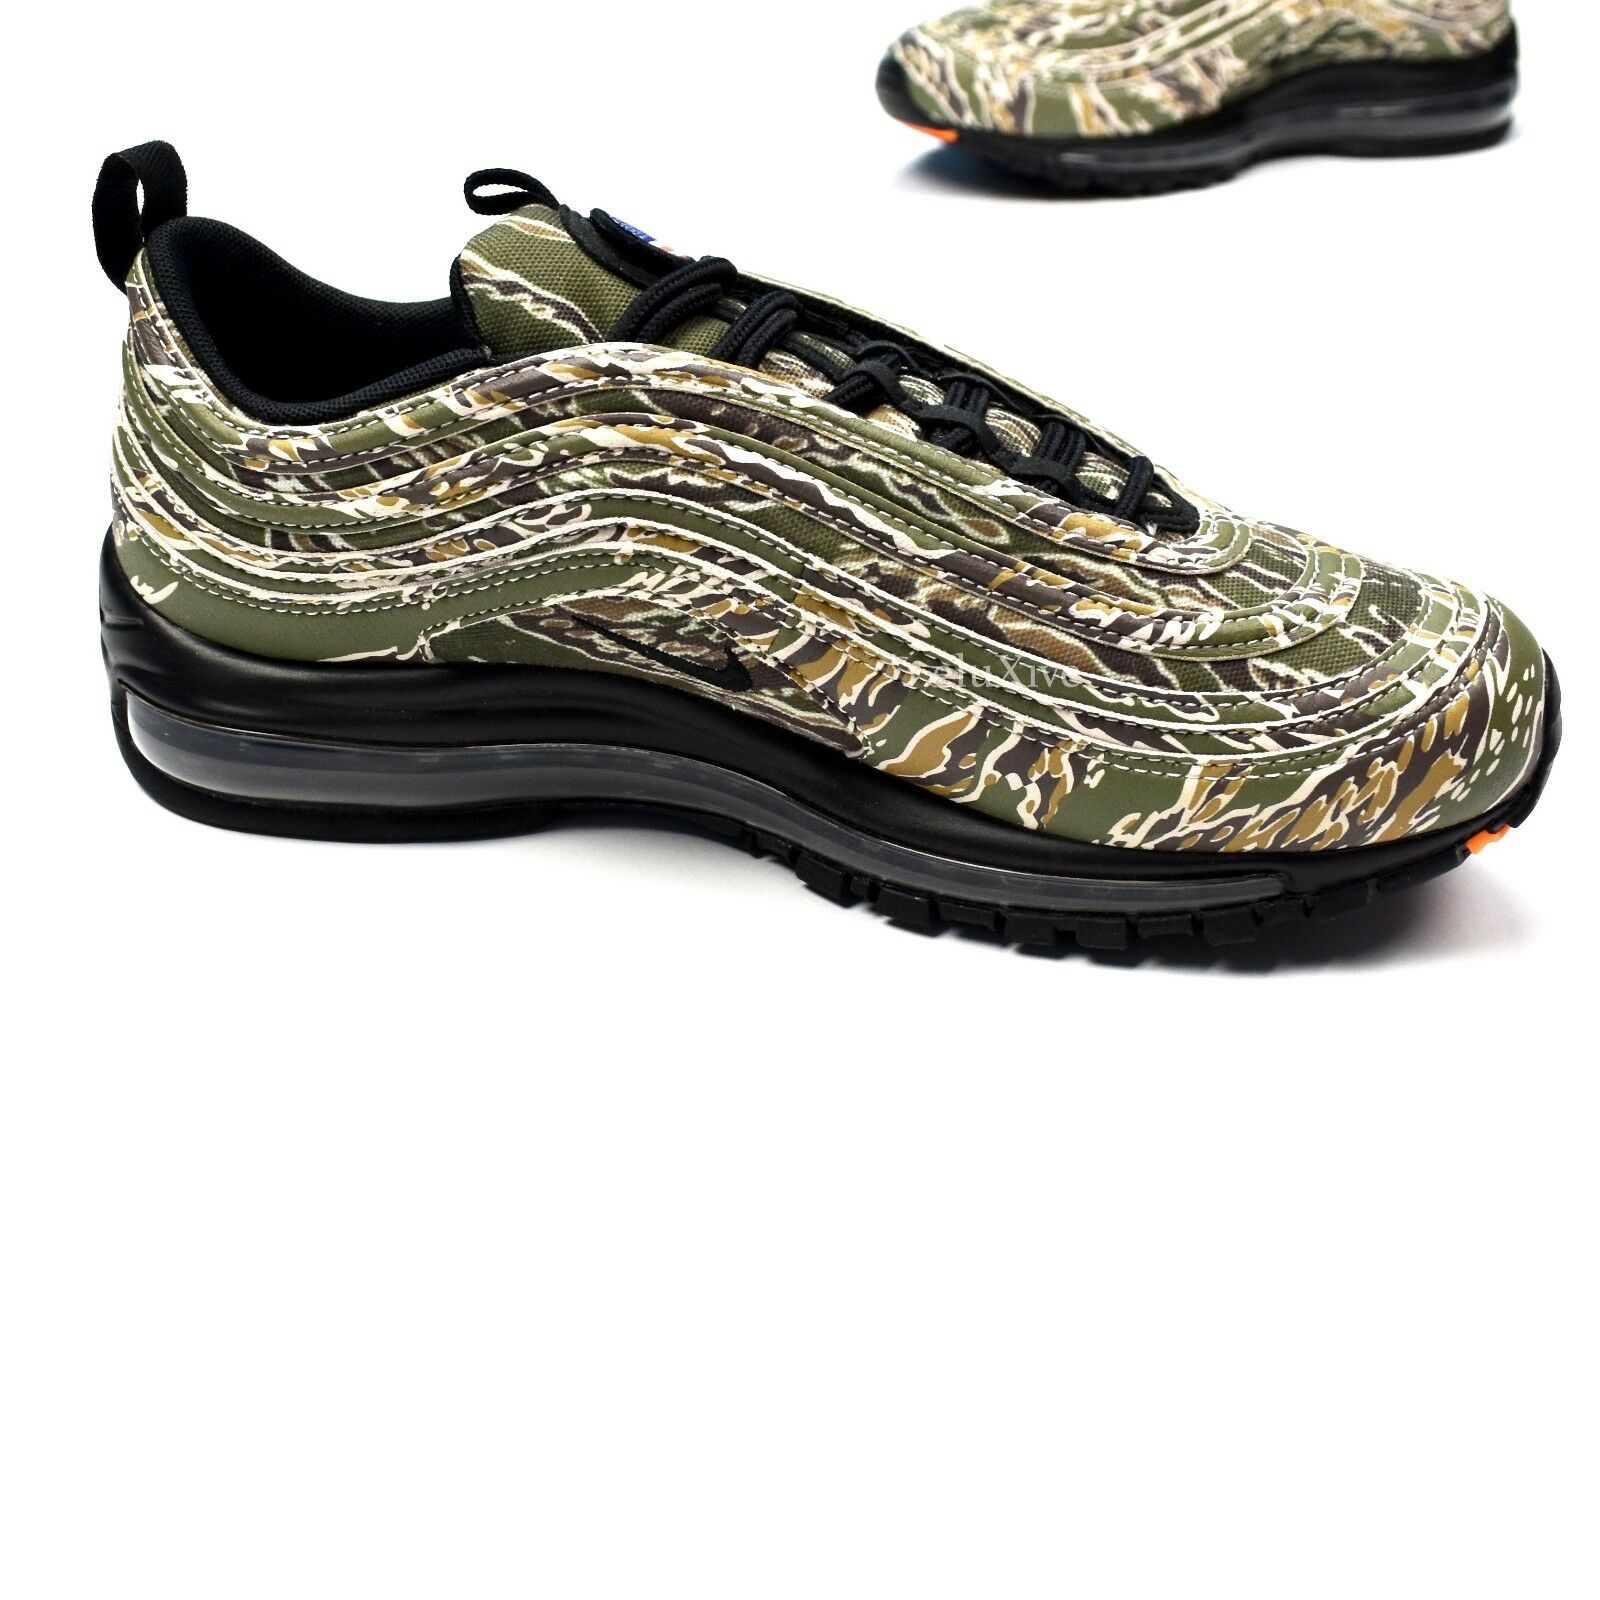 lower price with 75339 cff87 ... NWT Nike Air Max 97 país Camo Usa Usa Usa American Flag Hombres  Zapatillas Authentic casual ...